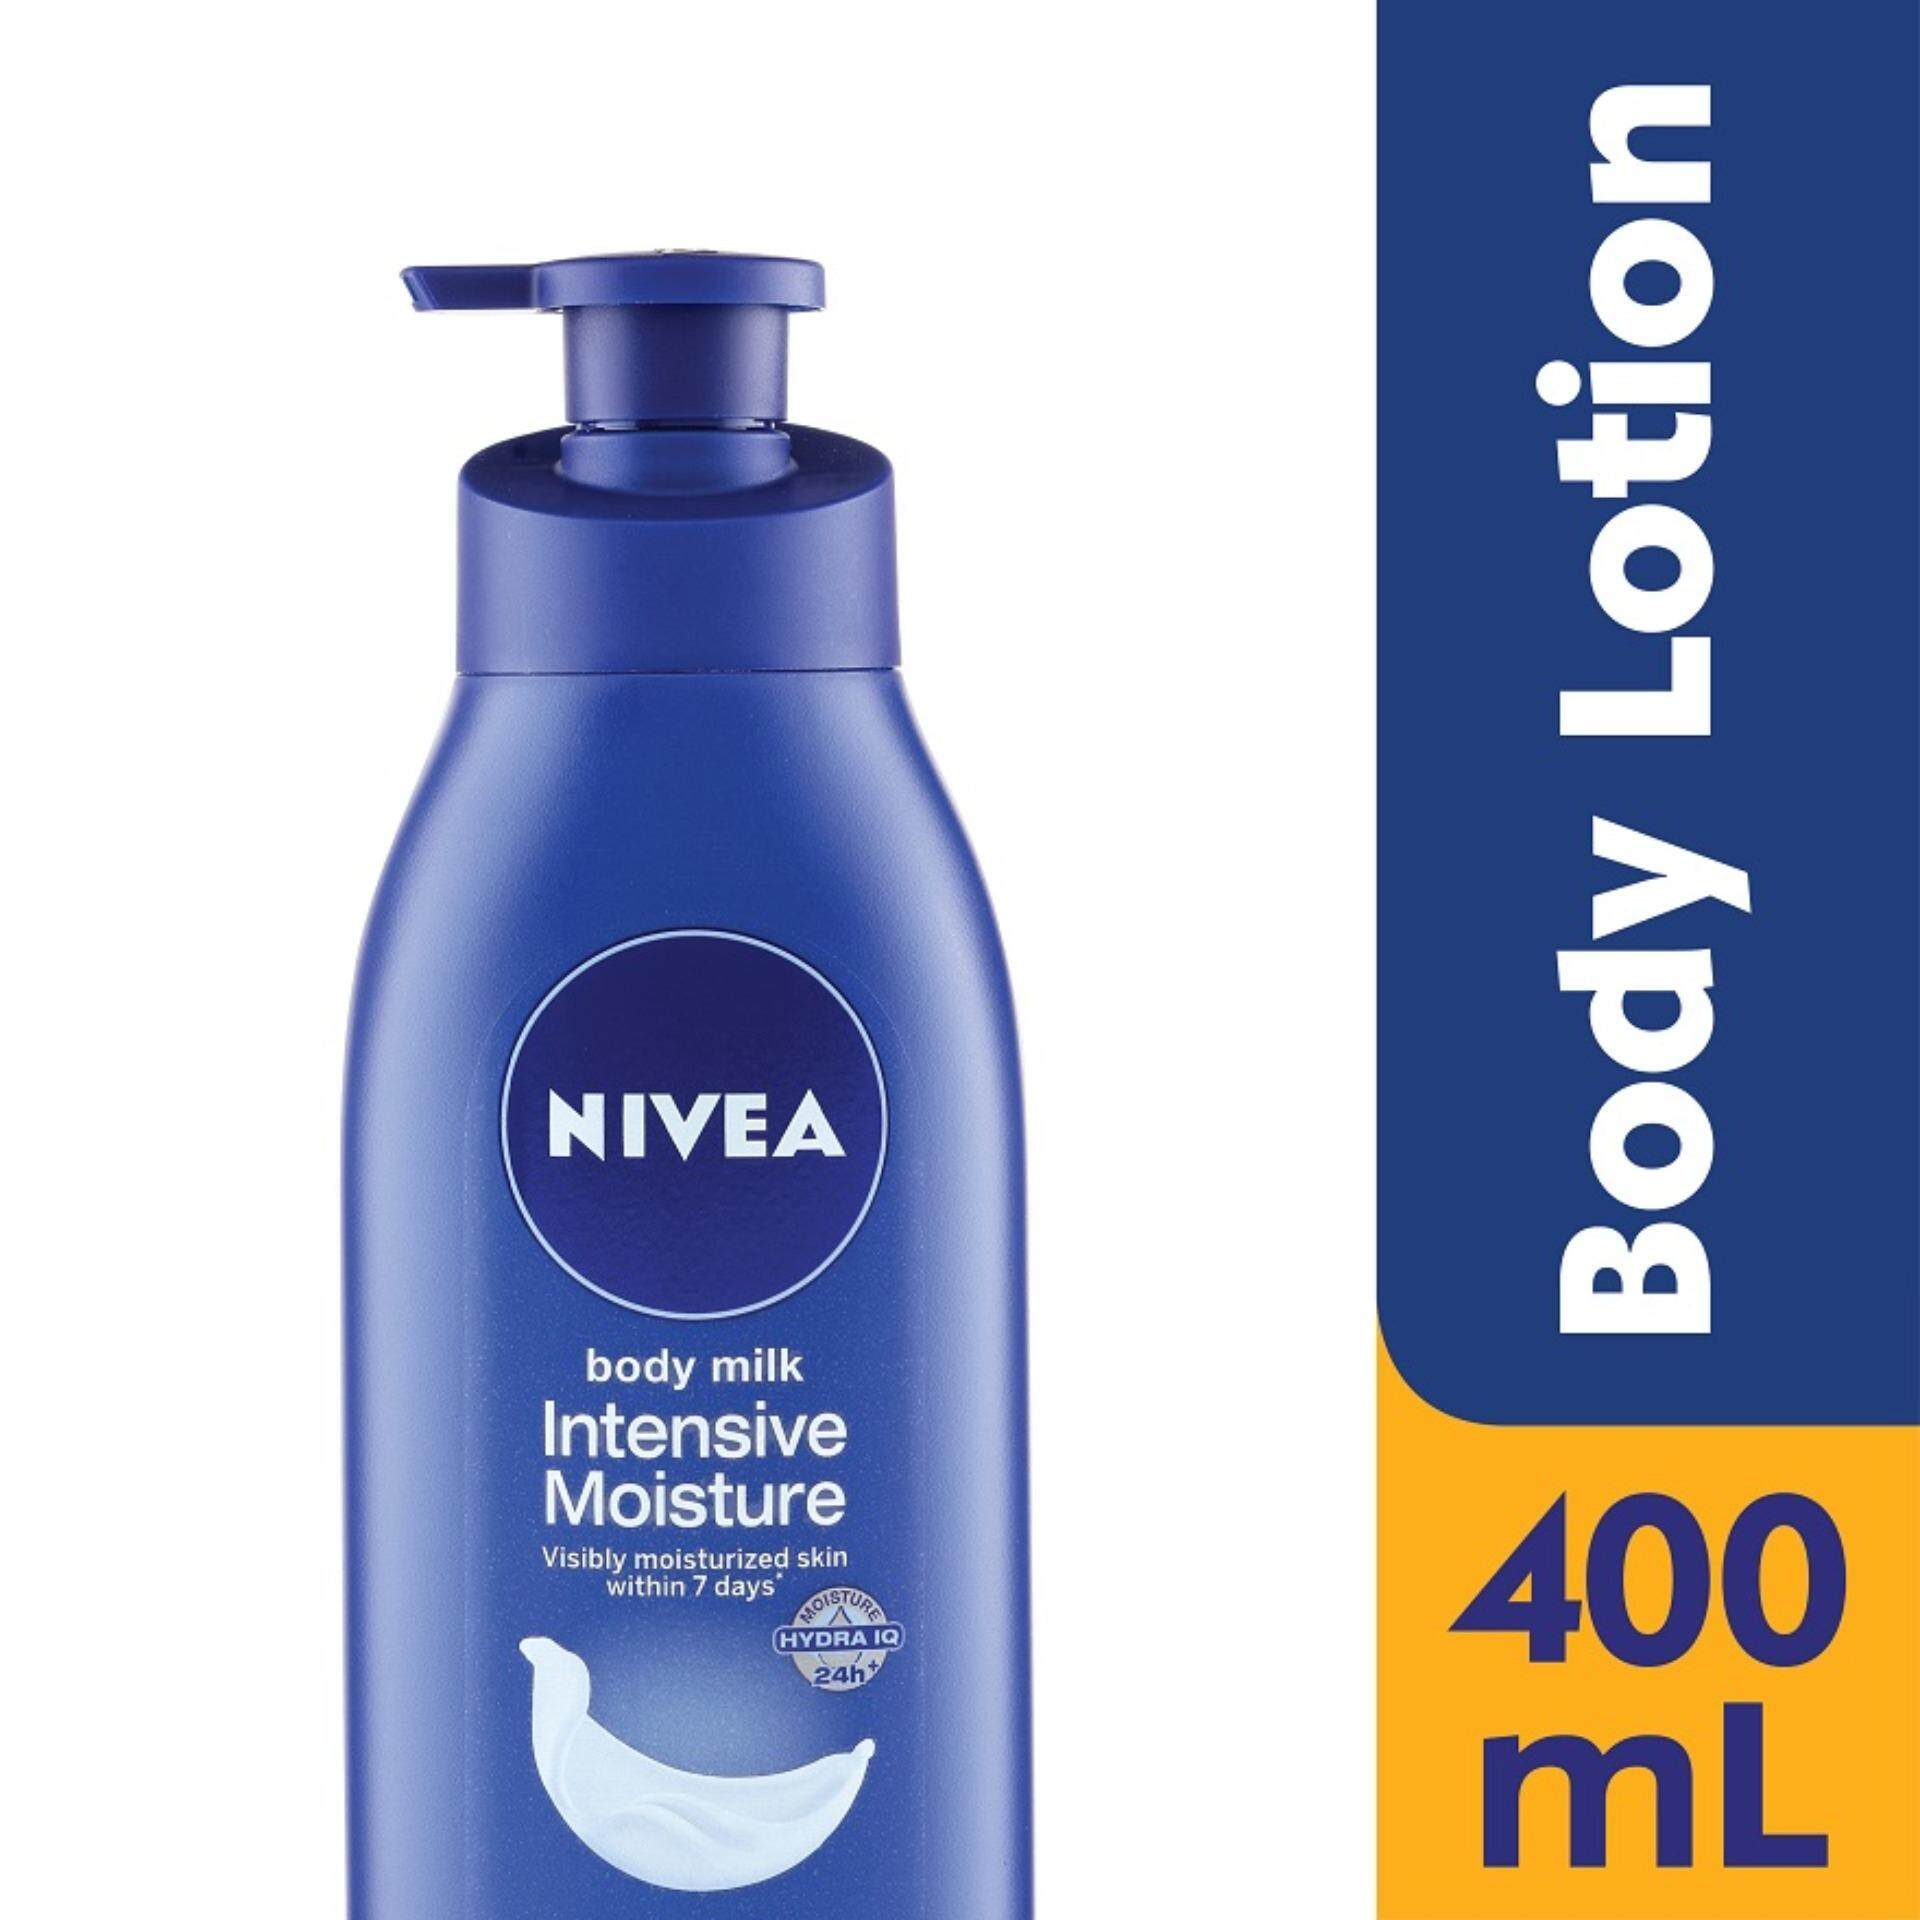 Nivea Products For The Best Price In Malaysia Whitening Sun Lotion Intensive Moisture Body Milk 400ml